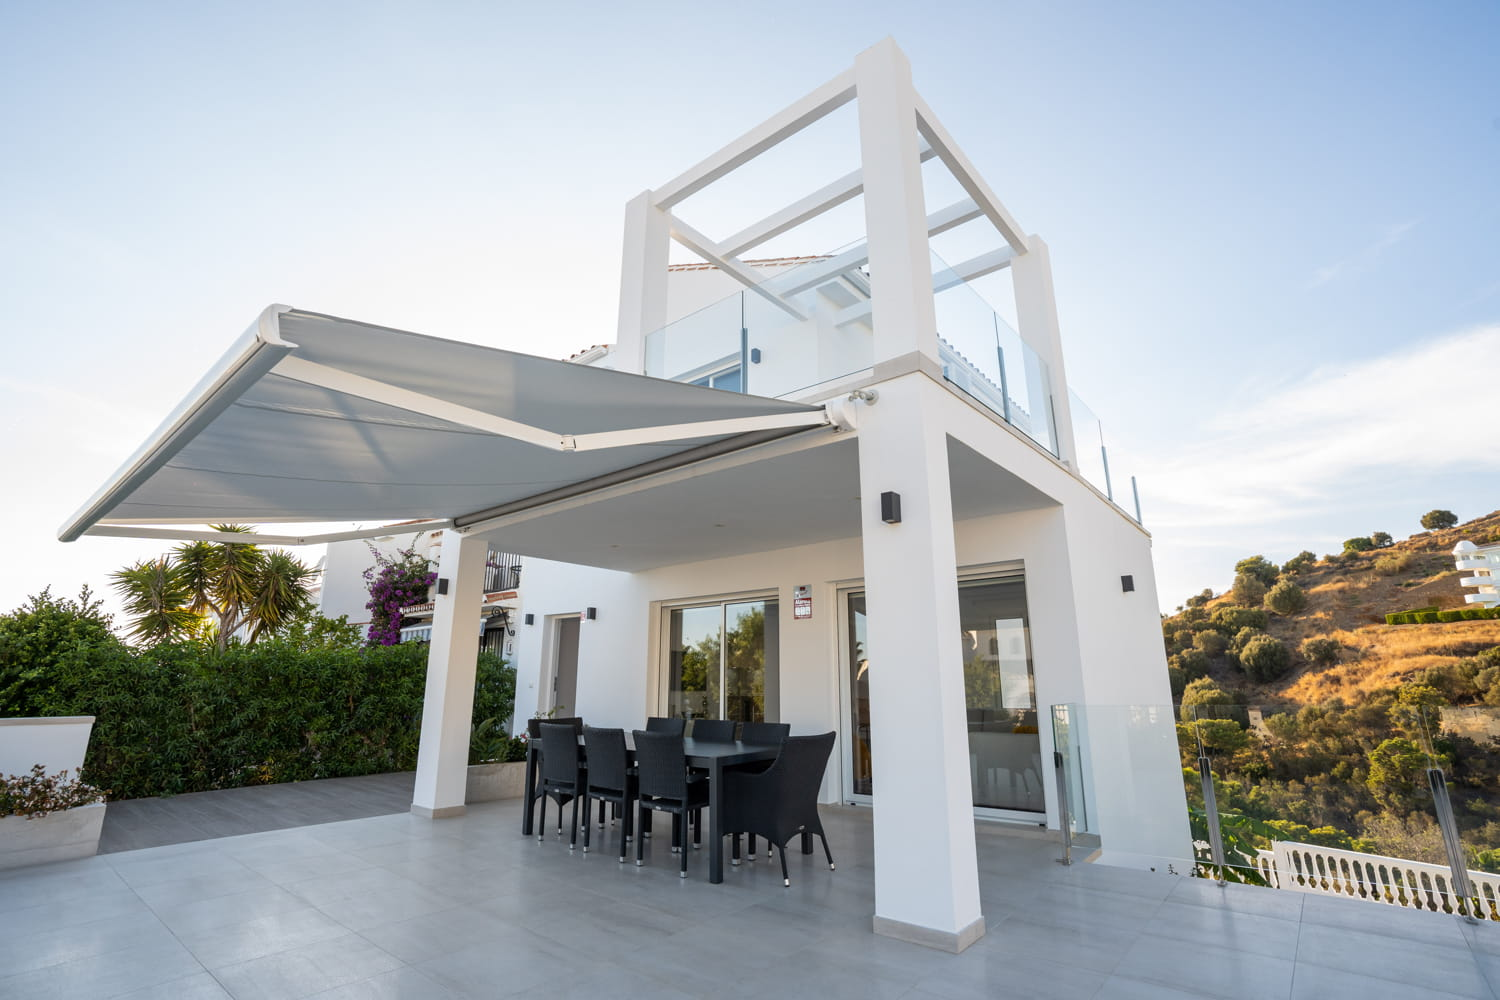 reforma integral villa mijas costa u projects (5)